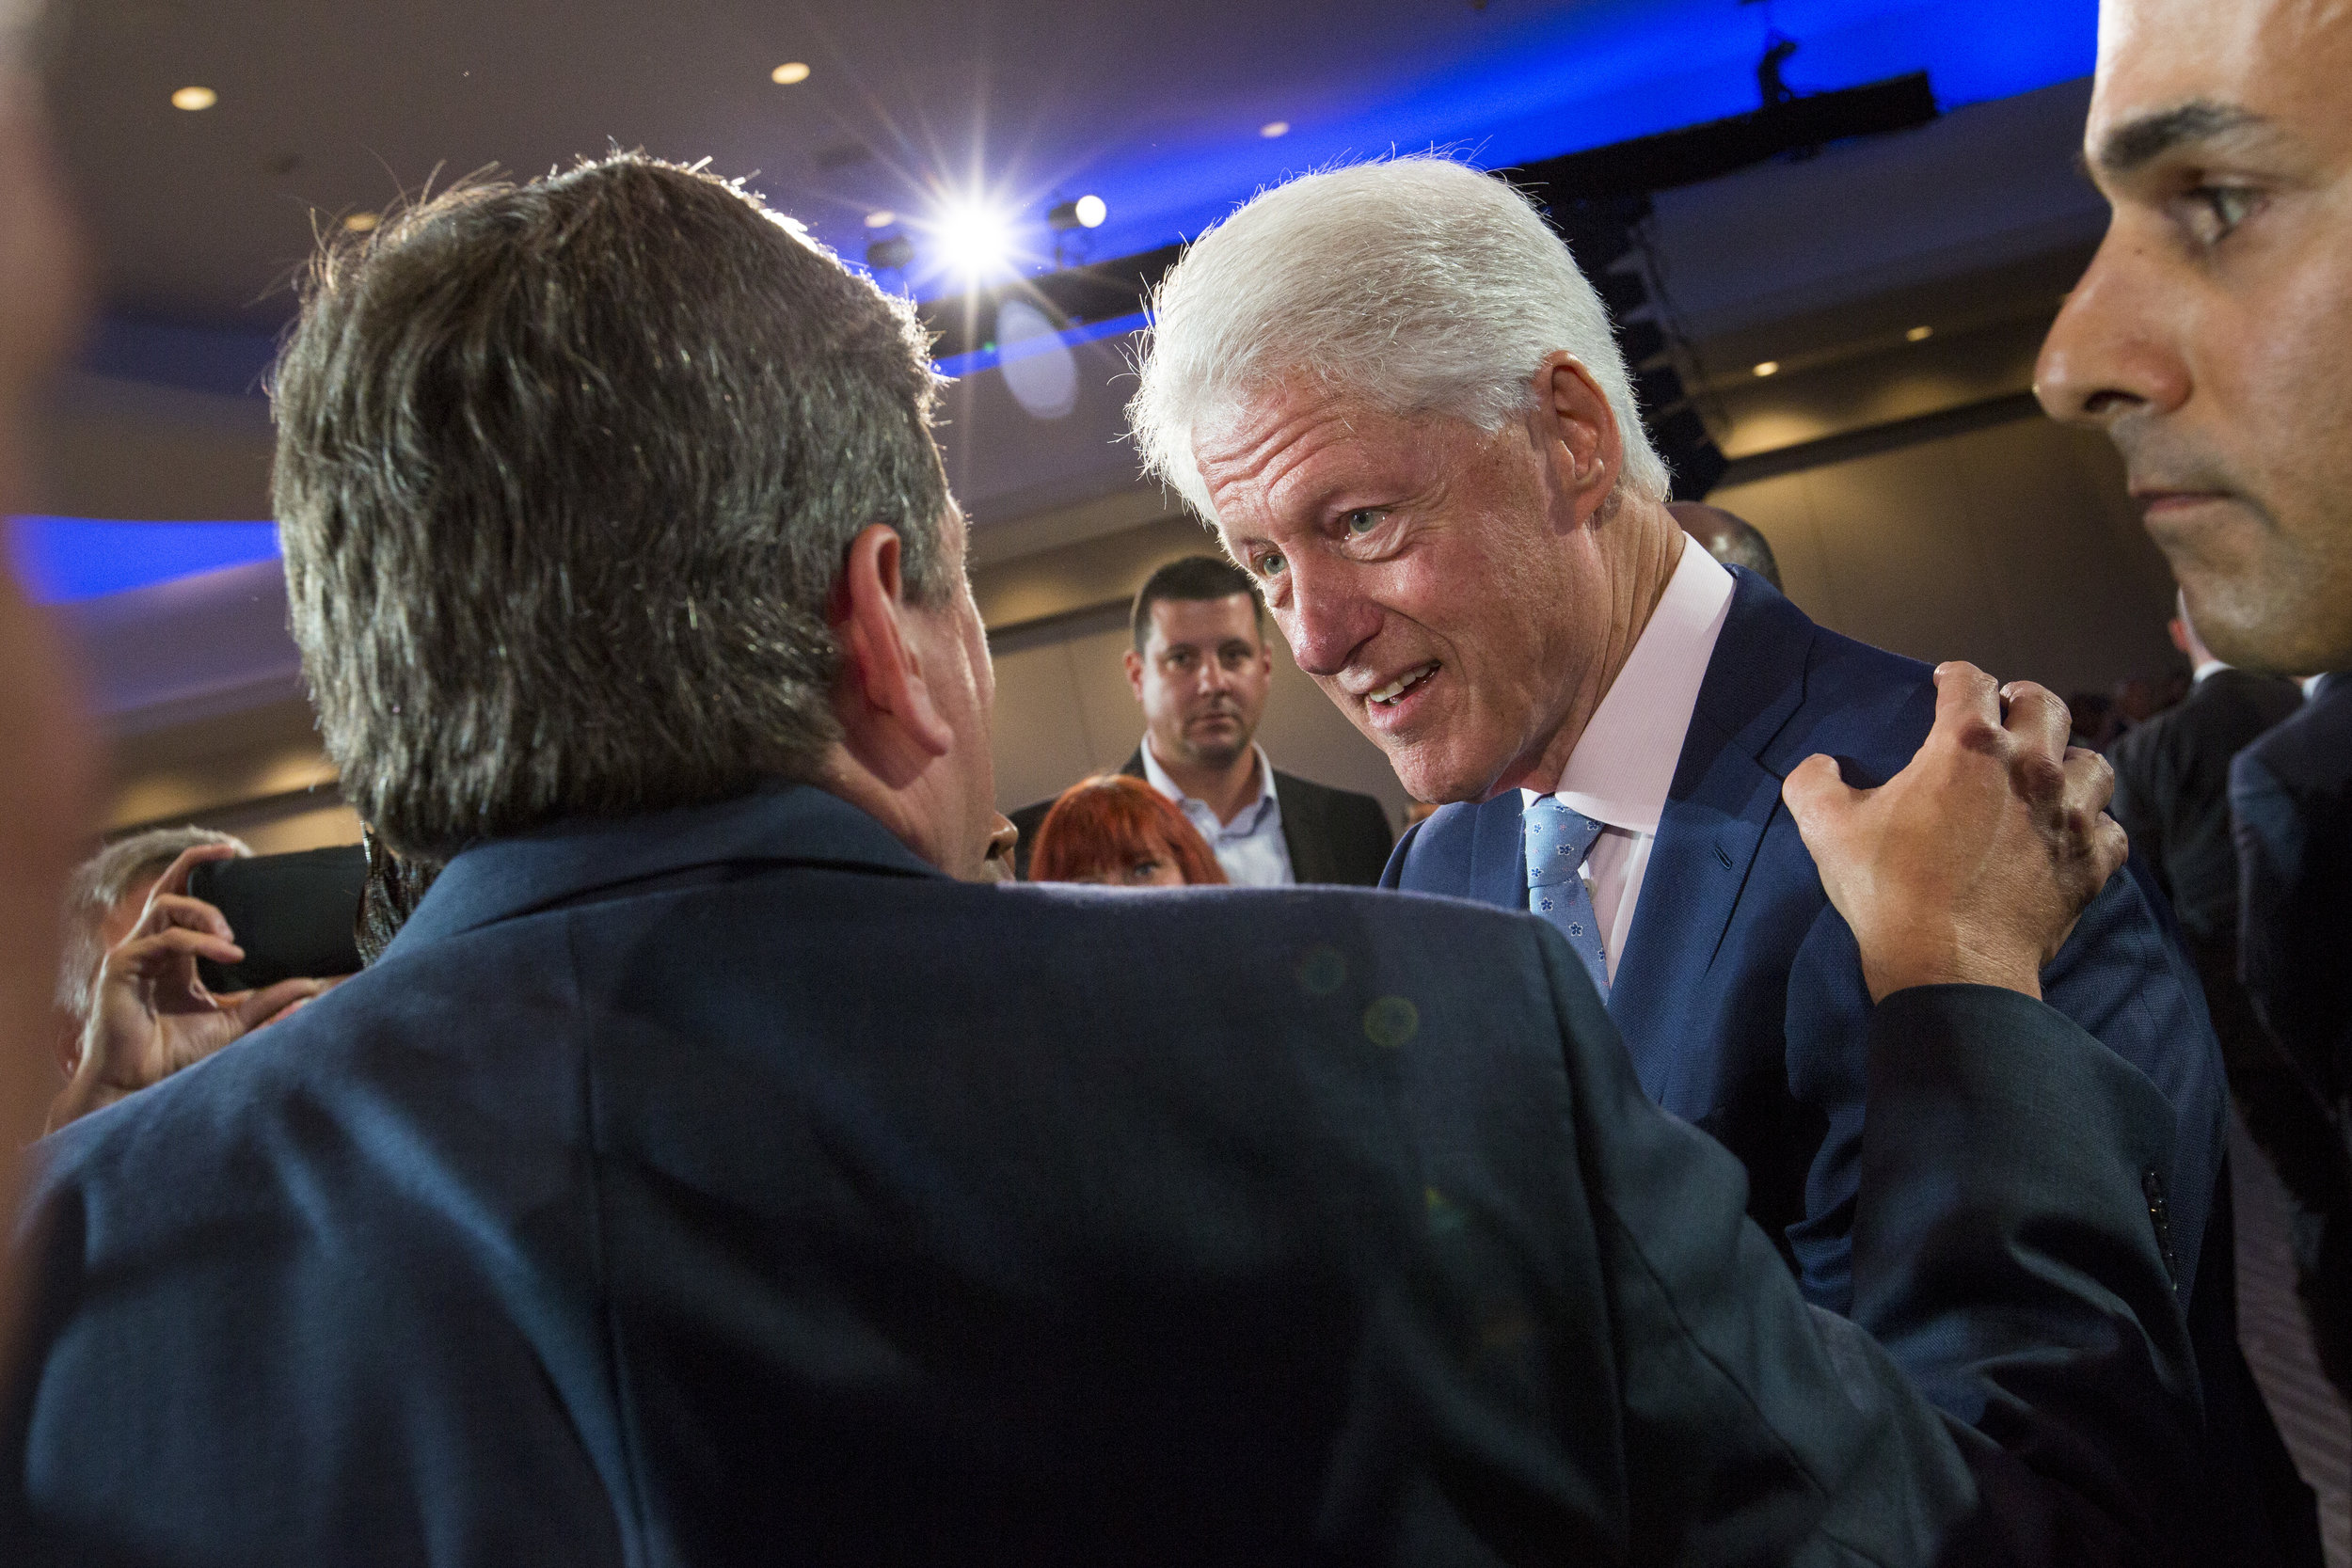 Former President Bill Clinton greets guests after speaking at a City Livability Luncheon during the United States Conference of Mayors at the Fontainebleau Hotel in Miami Beach on Saturday, June 24, 2017